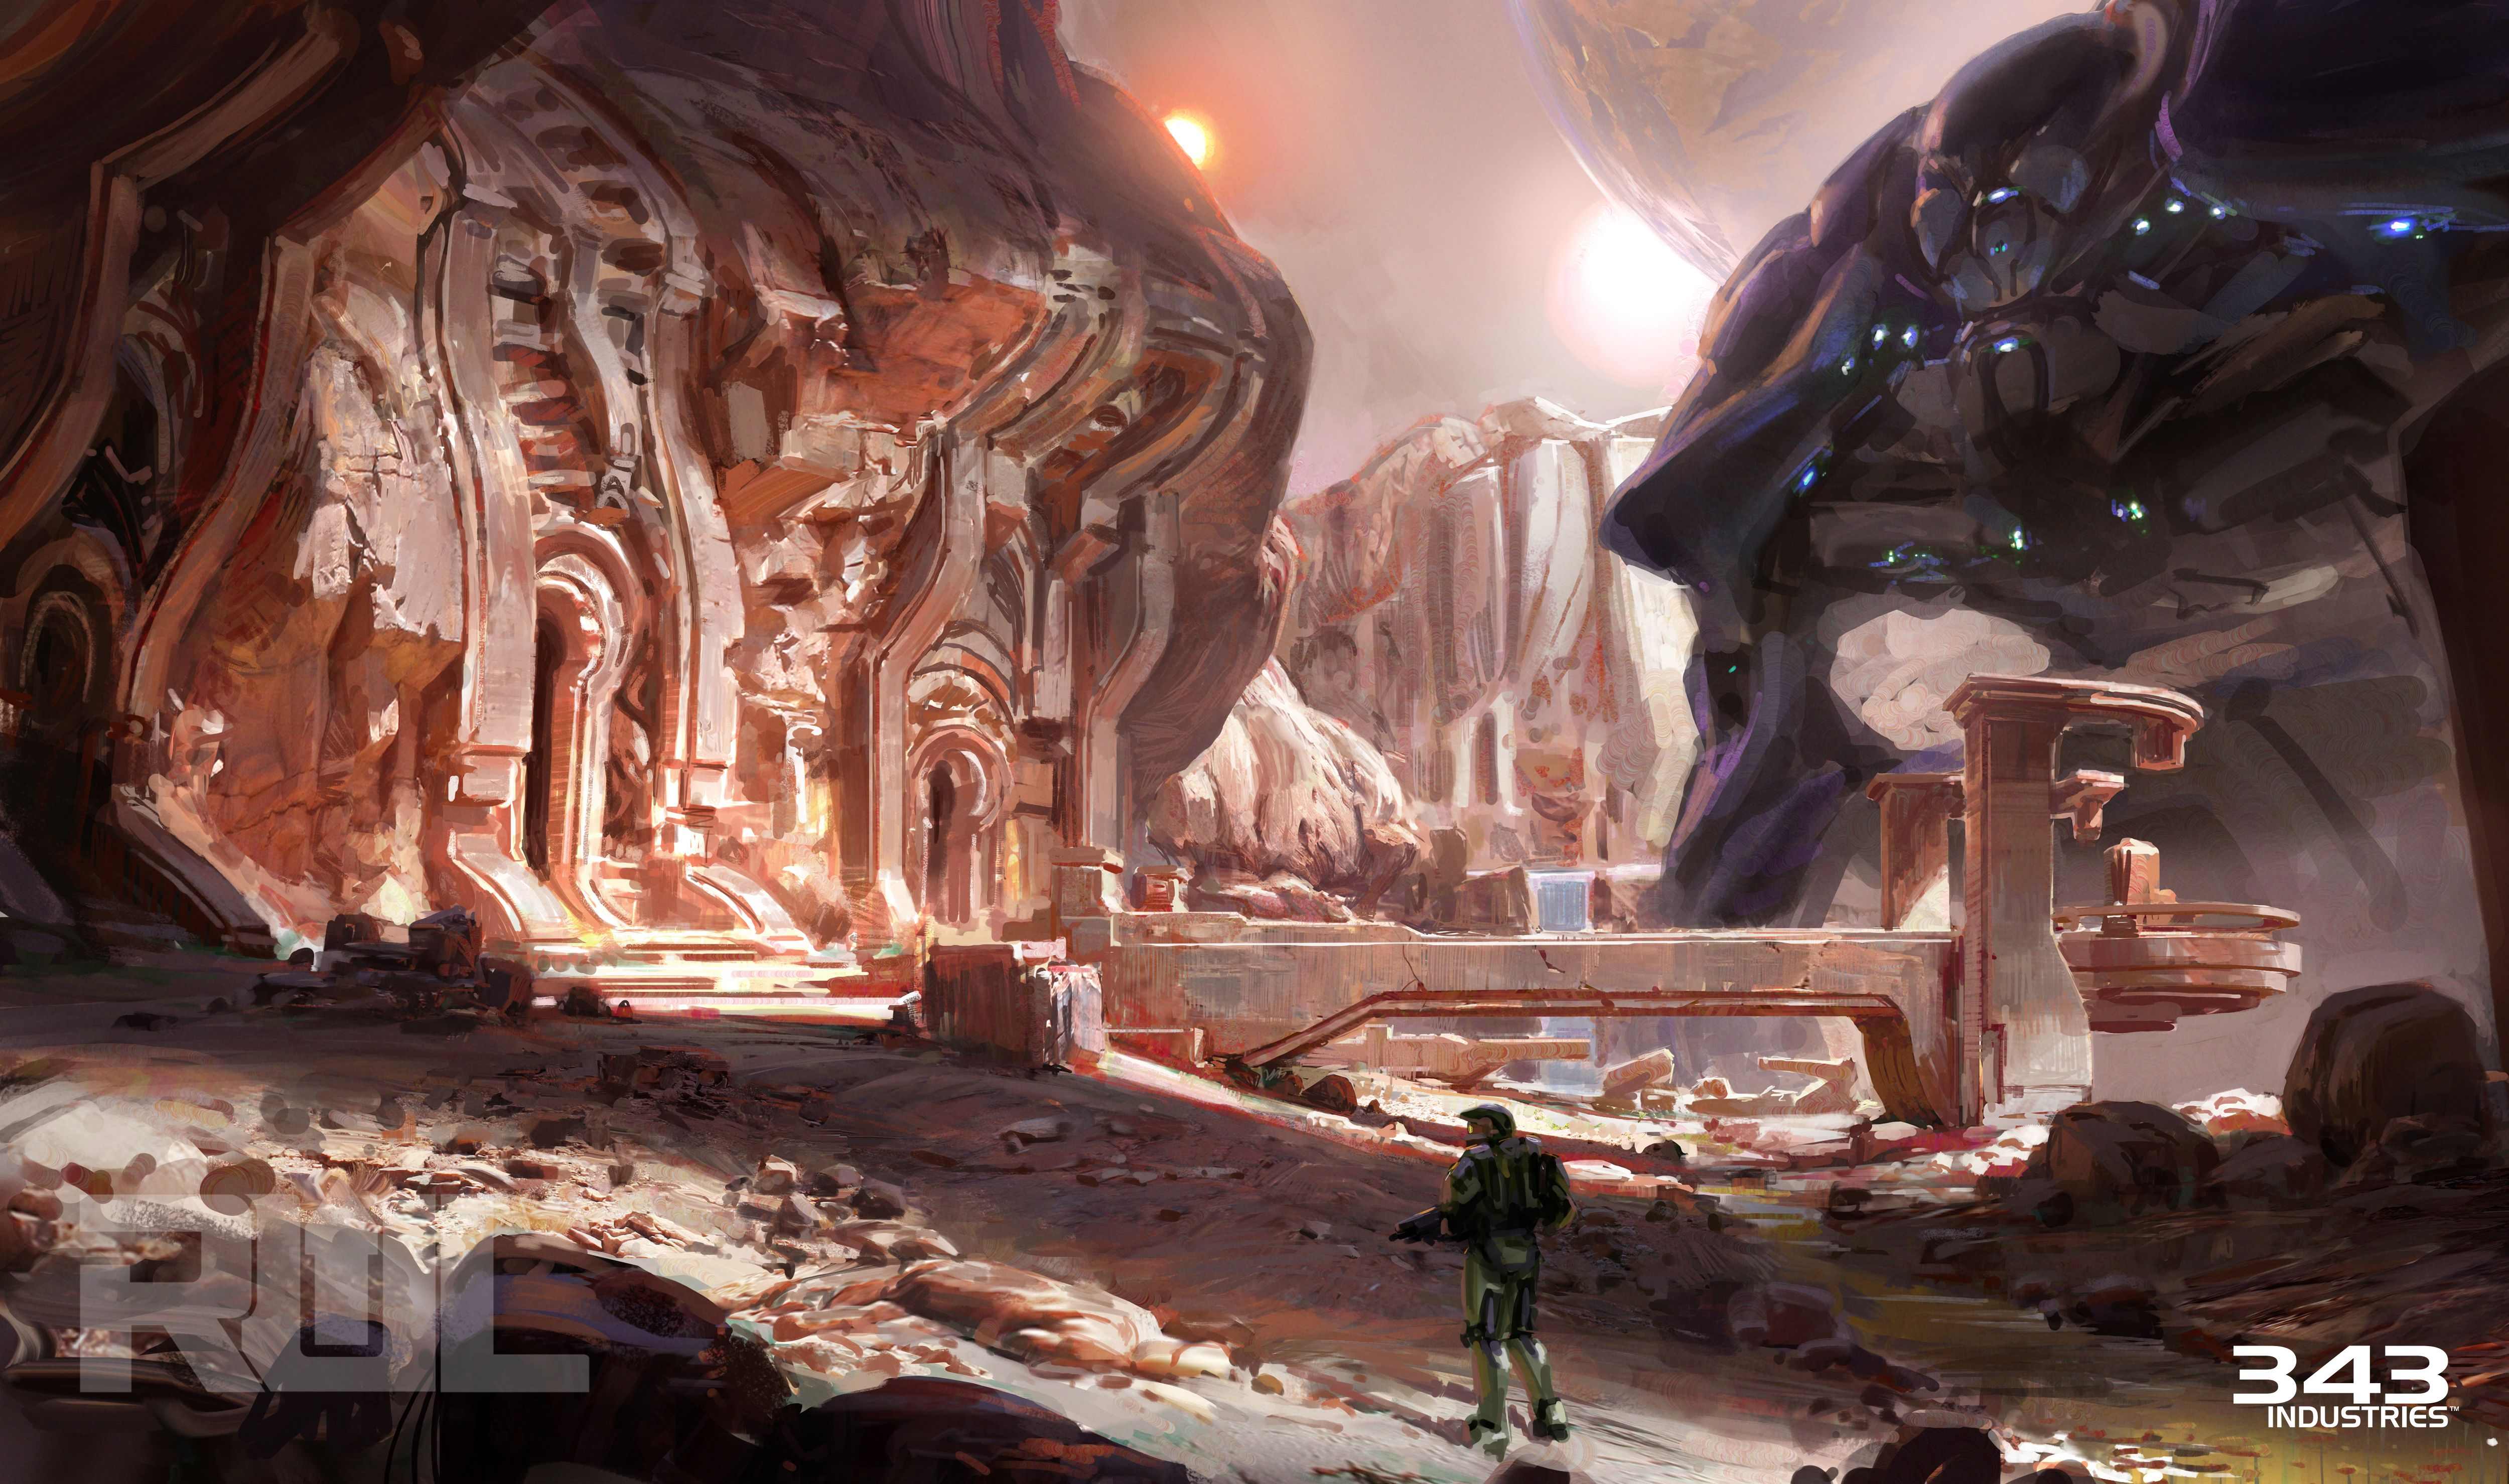 Pin by Wenjie Tee on Environment Ideas | Halo 5, Environment